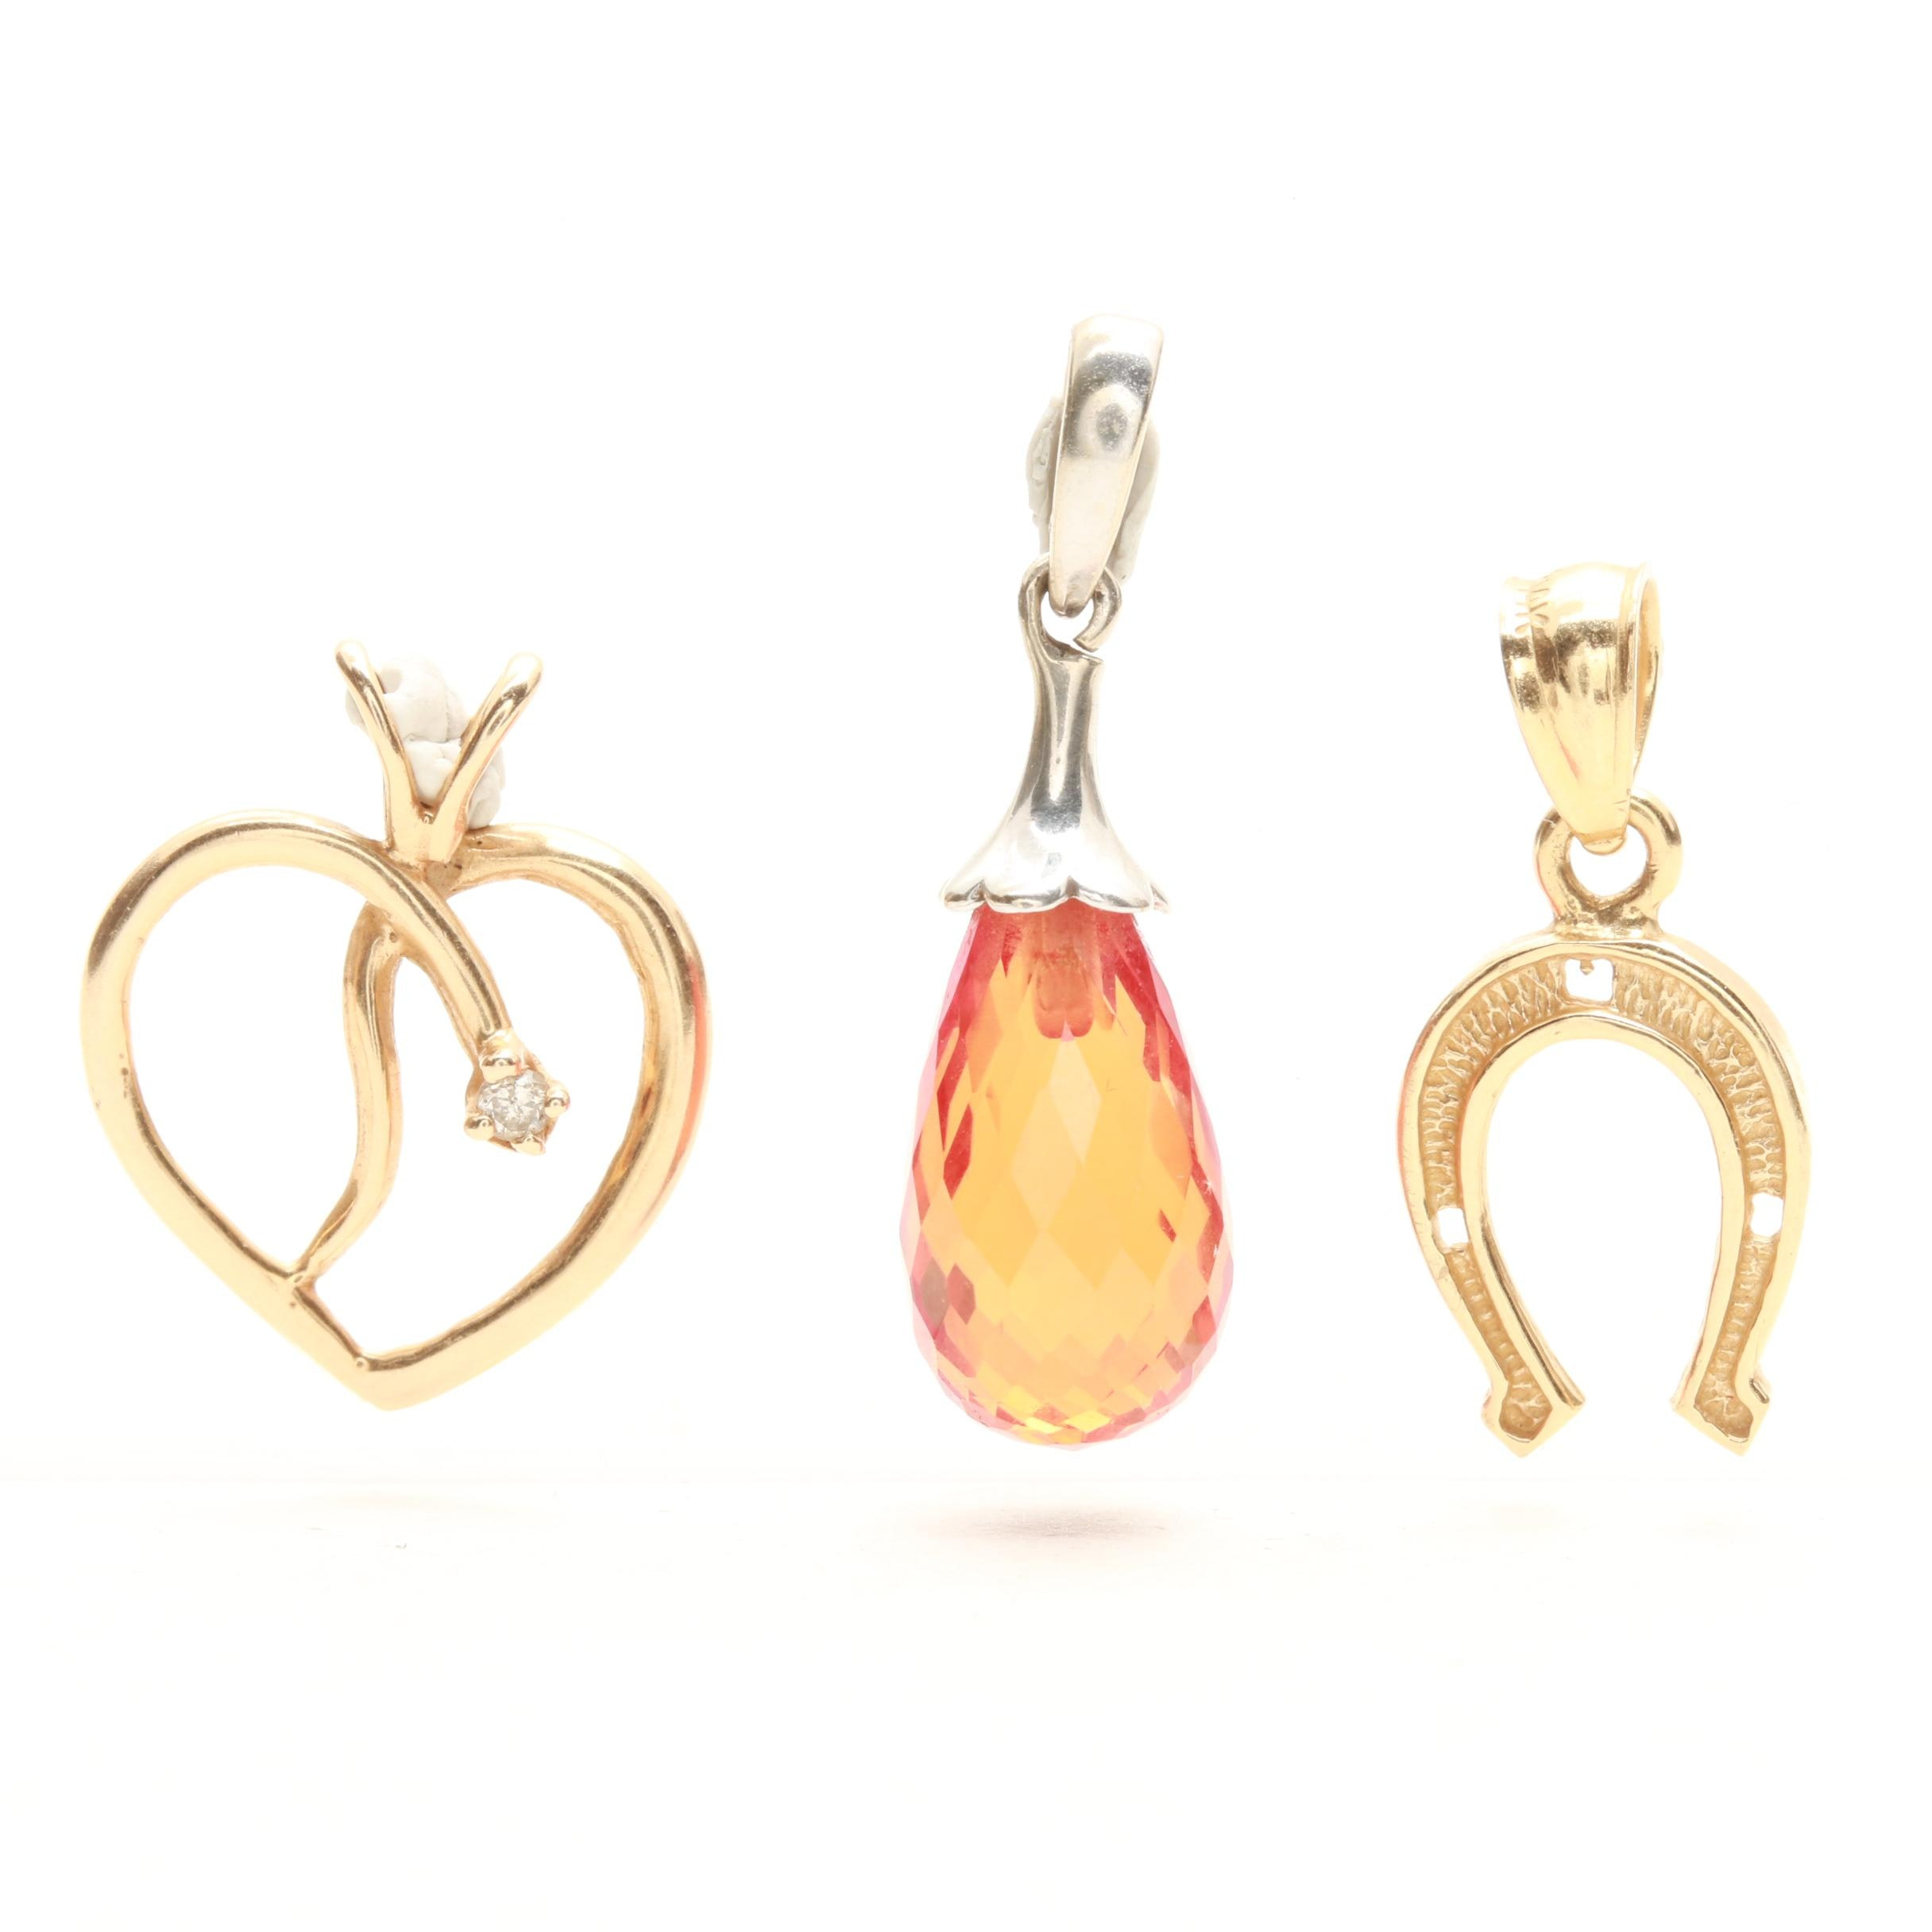 14K White and Yellow Gold Diamond and Synthetic Sapphire Pendants